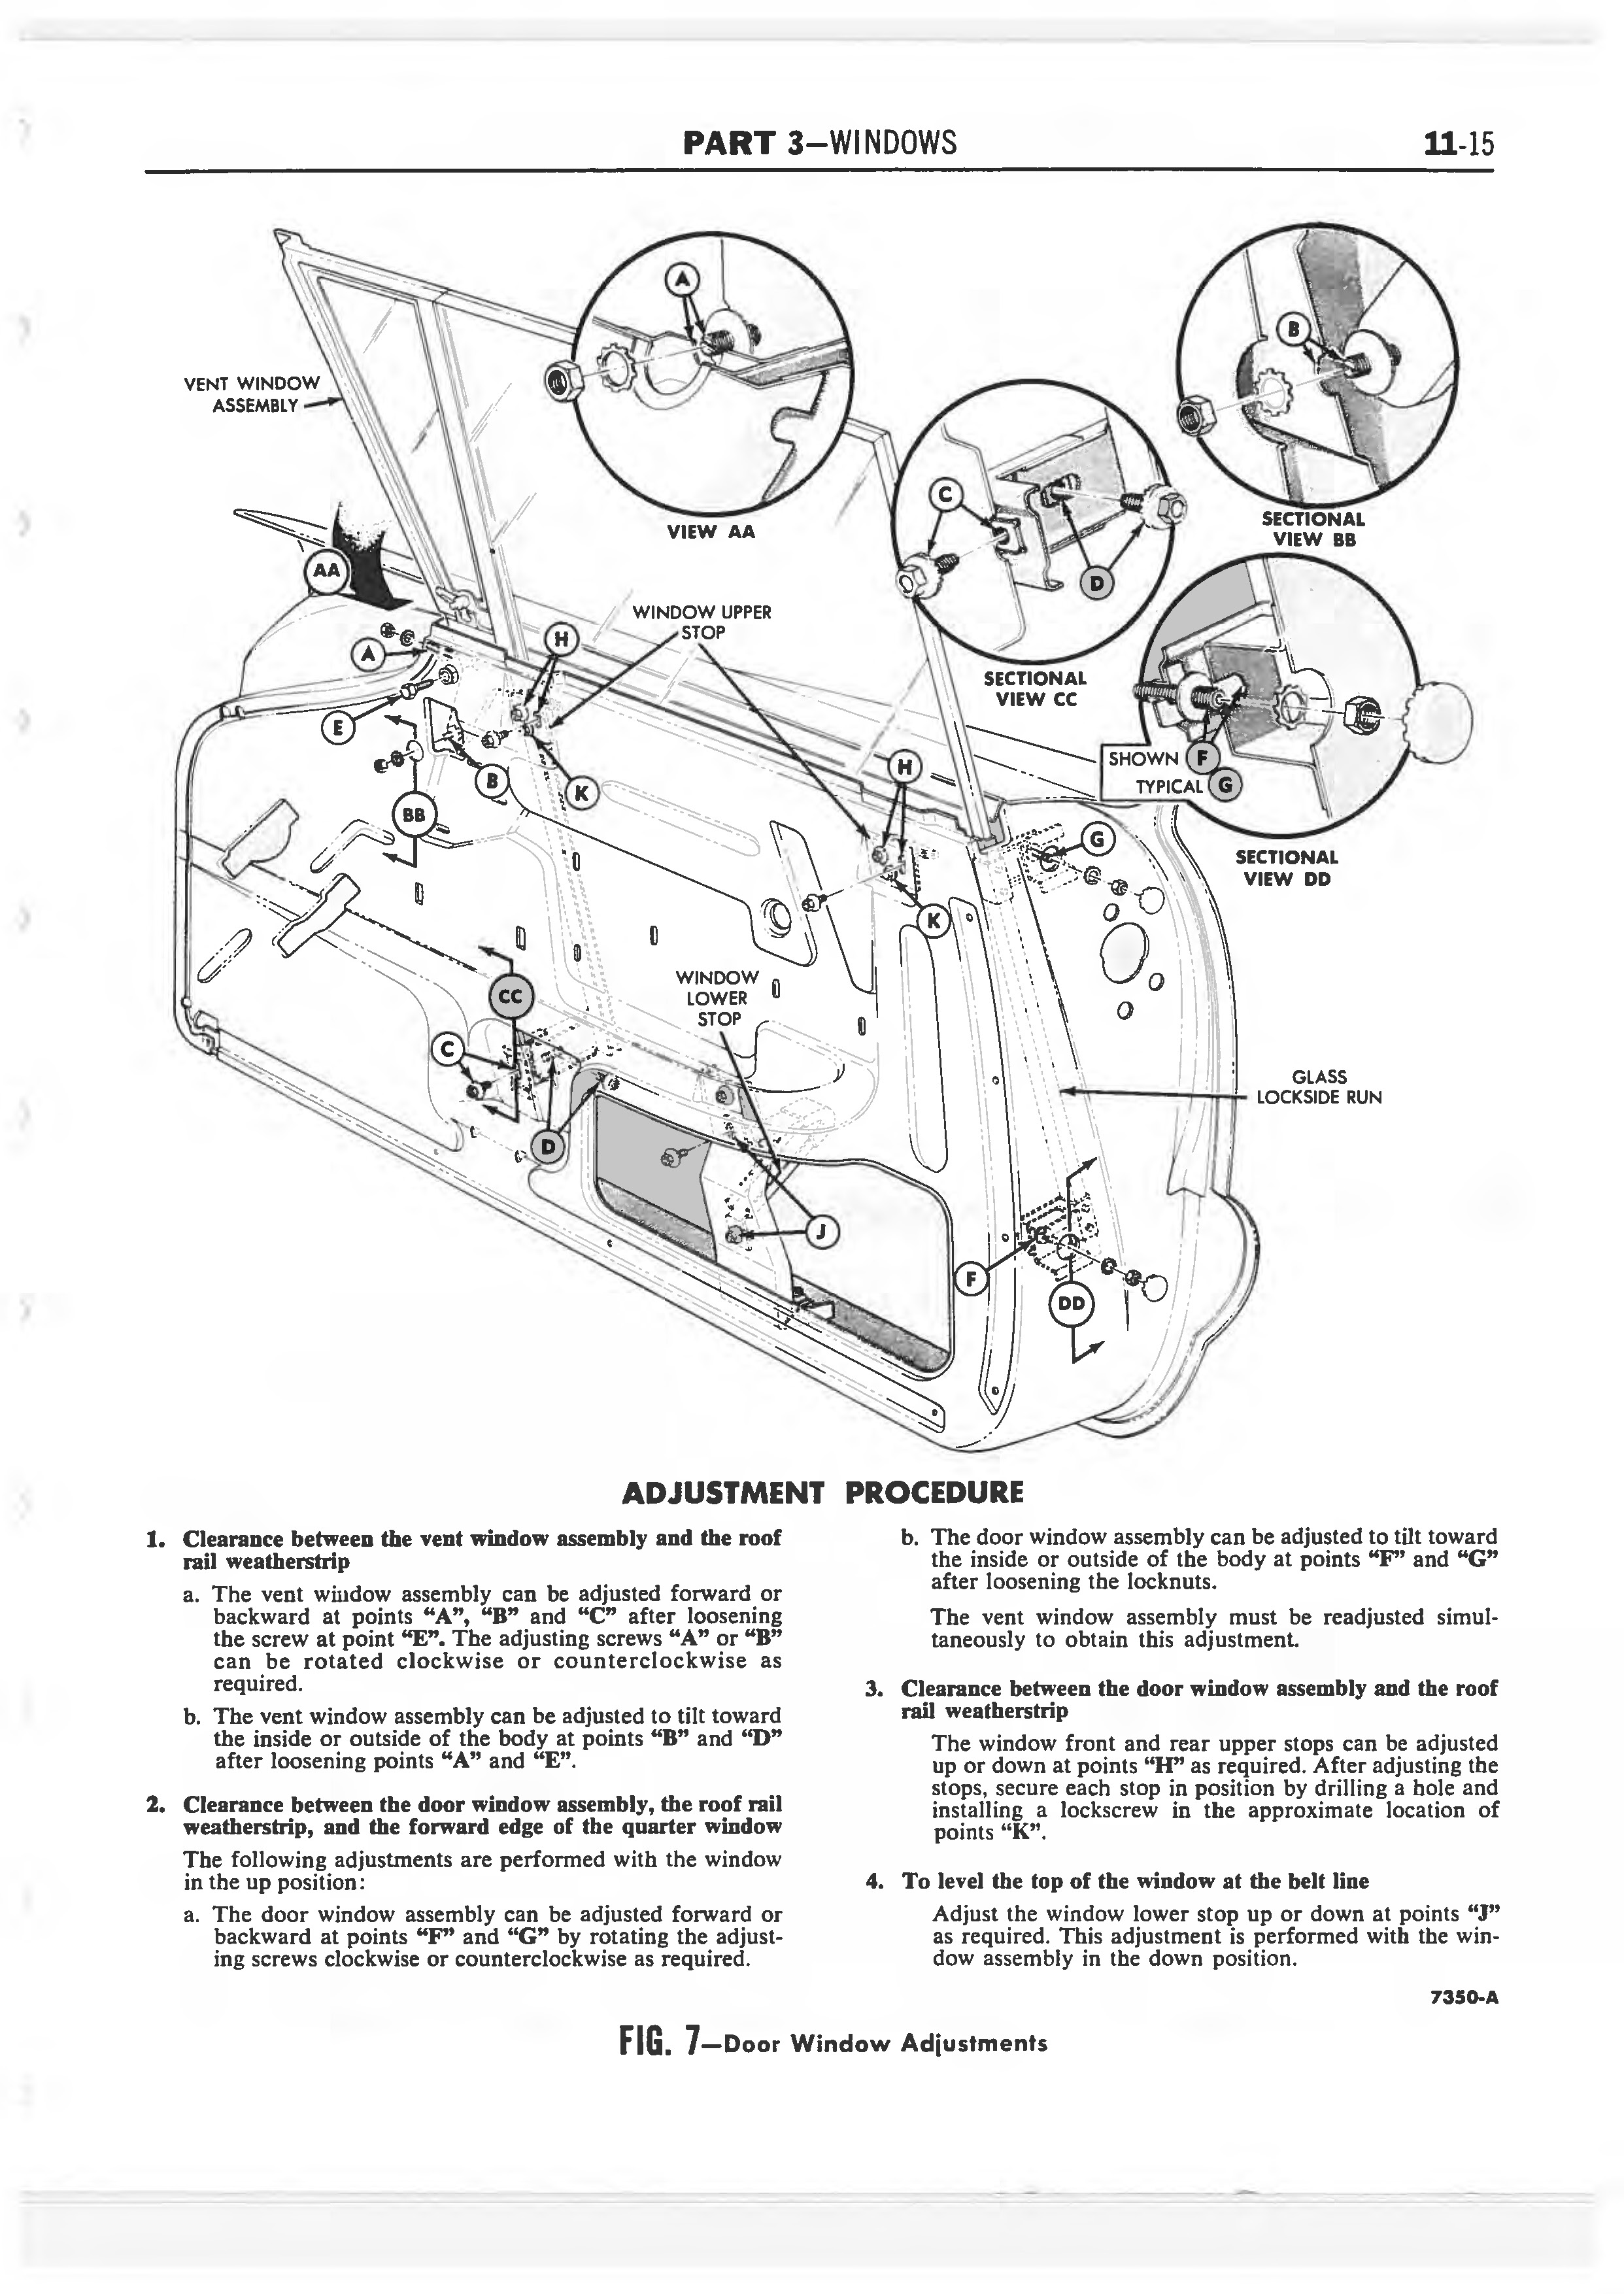 1958 Ford Thunderbird Shop Manual page 328 of 360